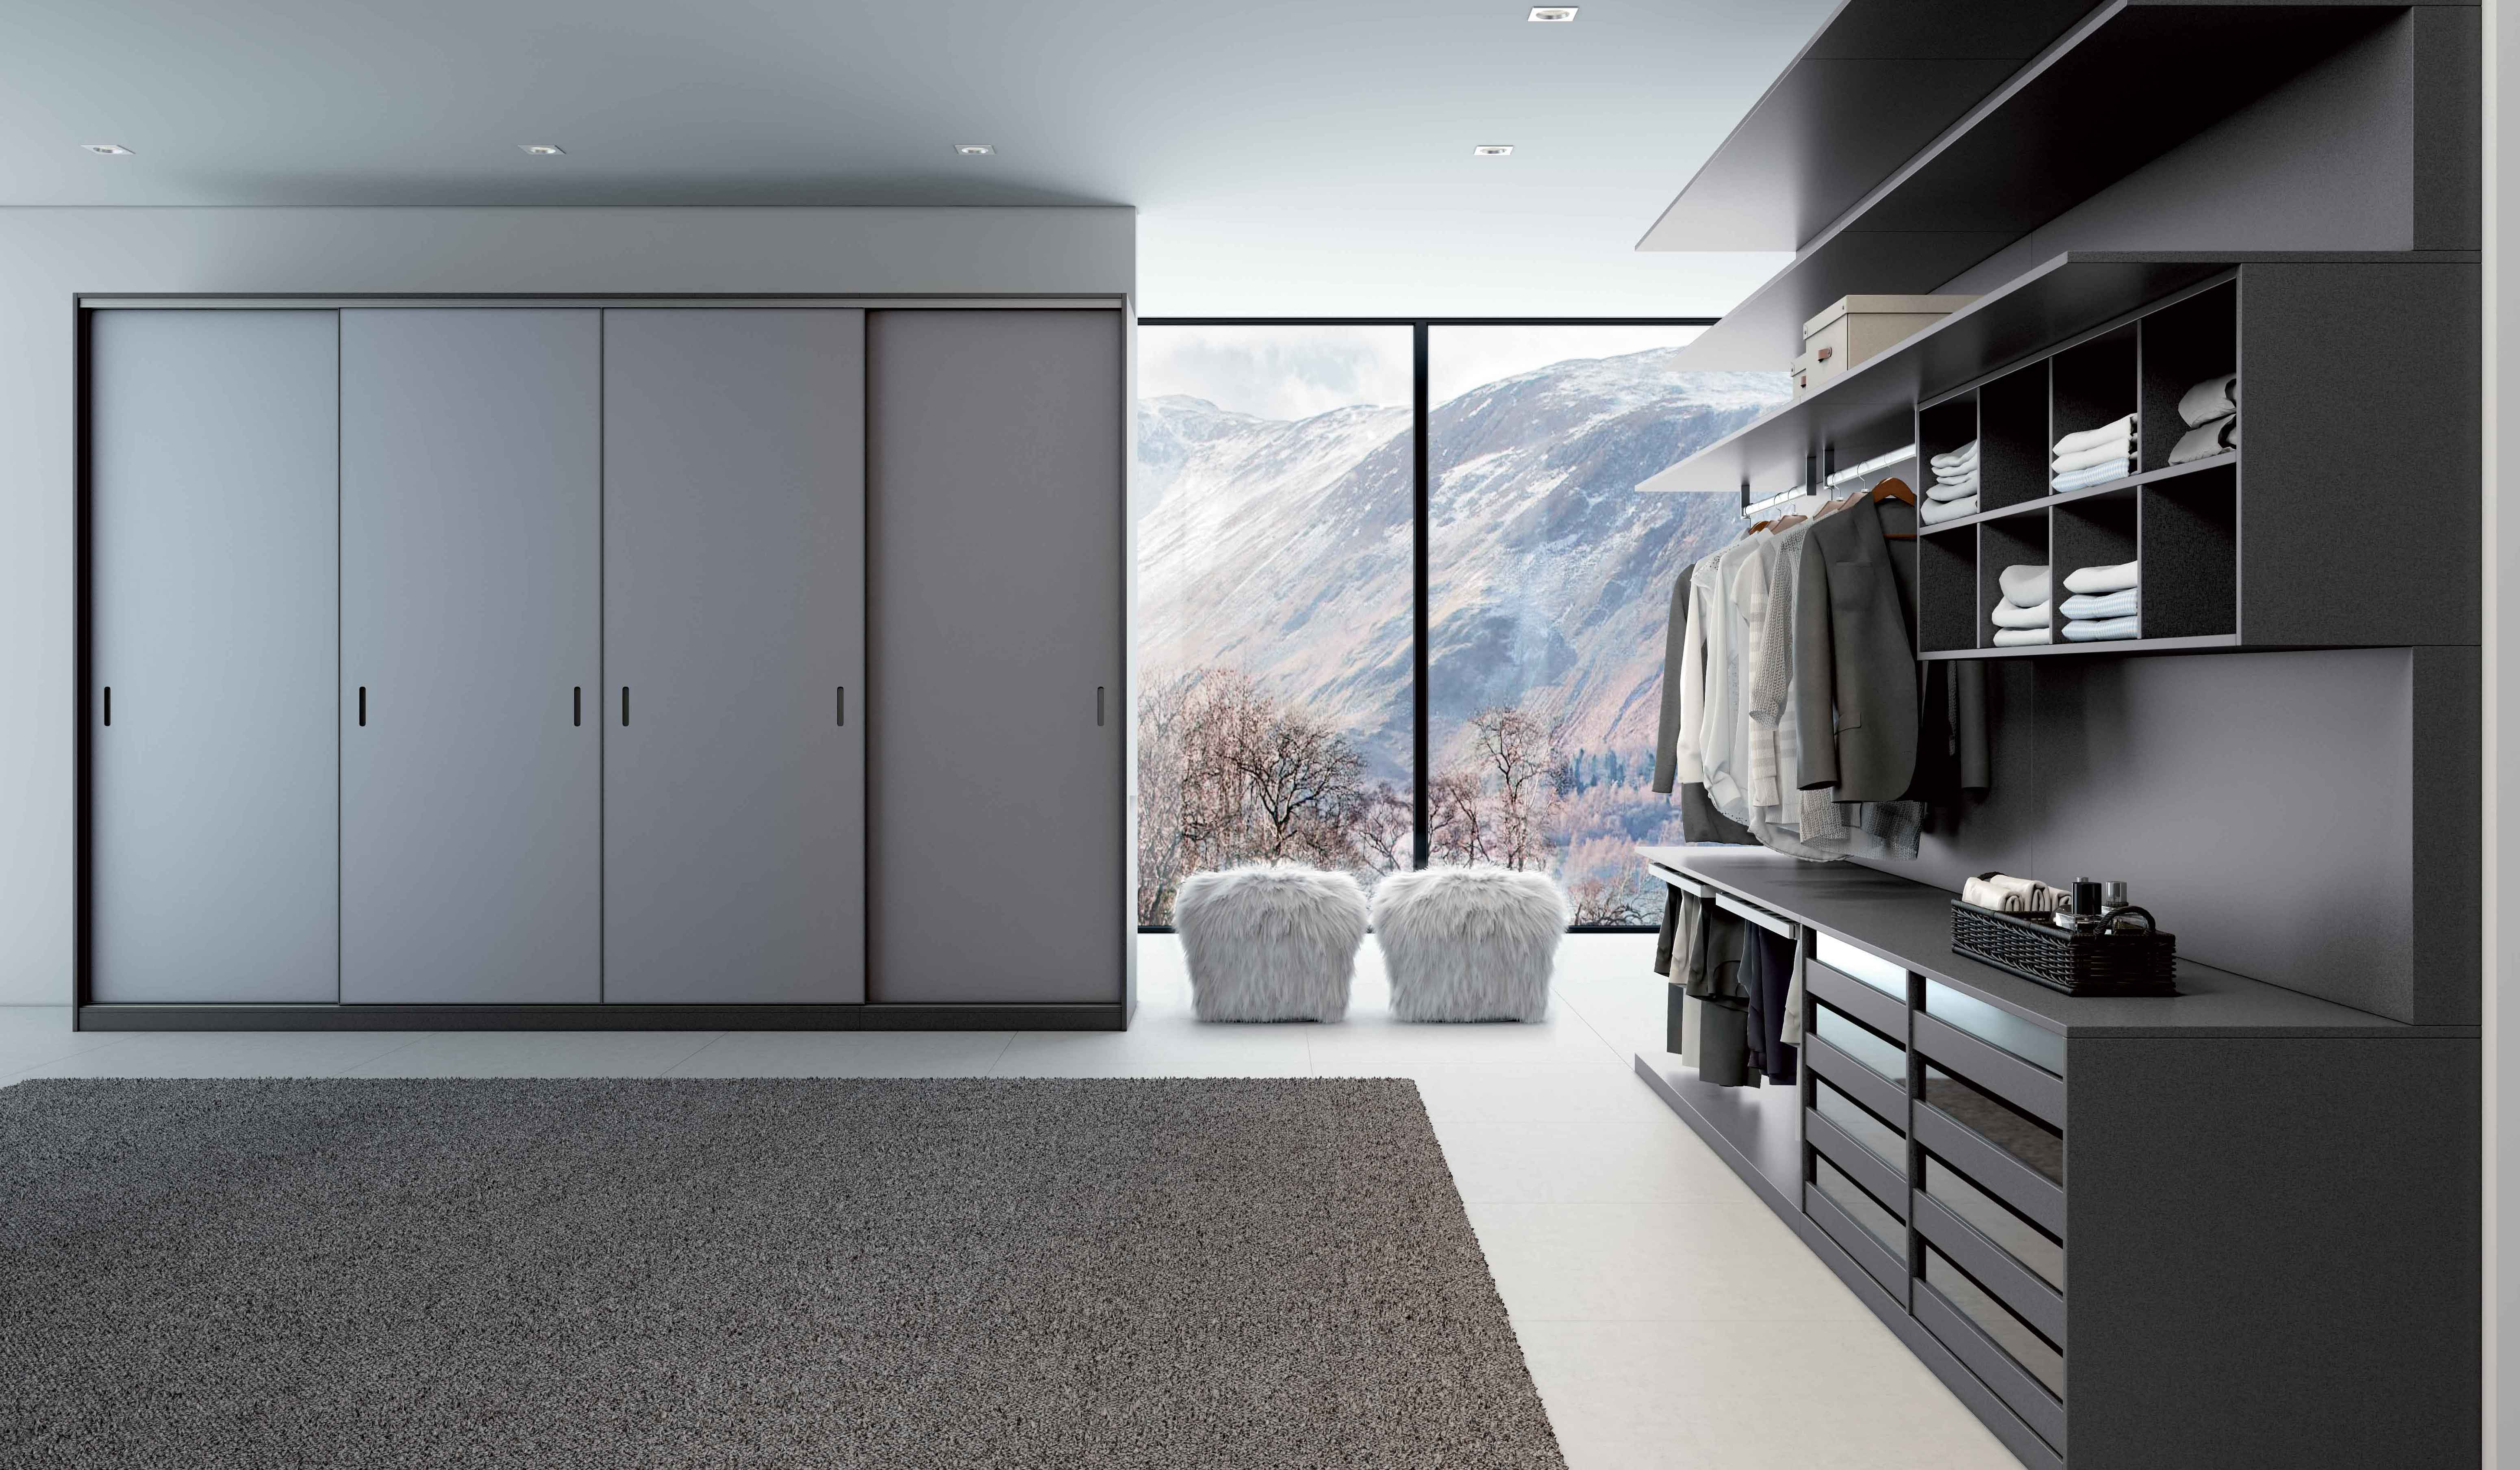 Modern Closet Combining Aesthetics With Efficiency In A Union Of Form And Function. Dell Anno Closets Are Built To Organize Your Sense Of Style